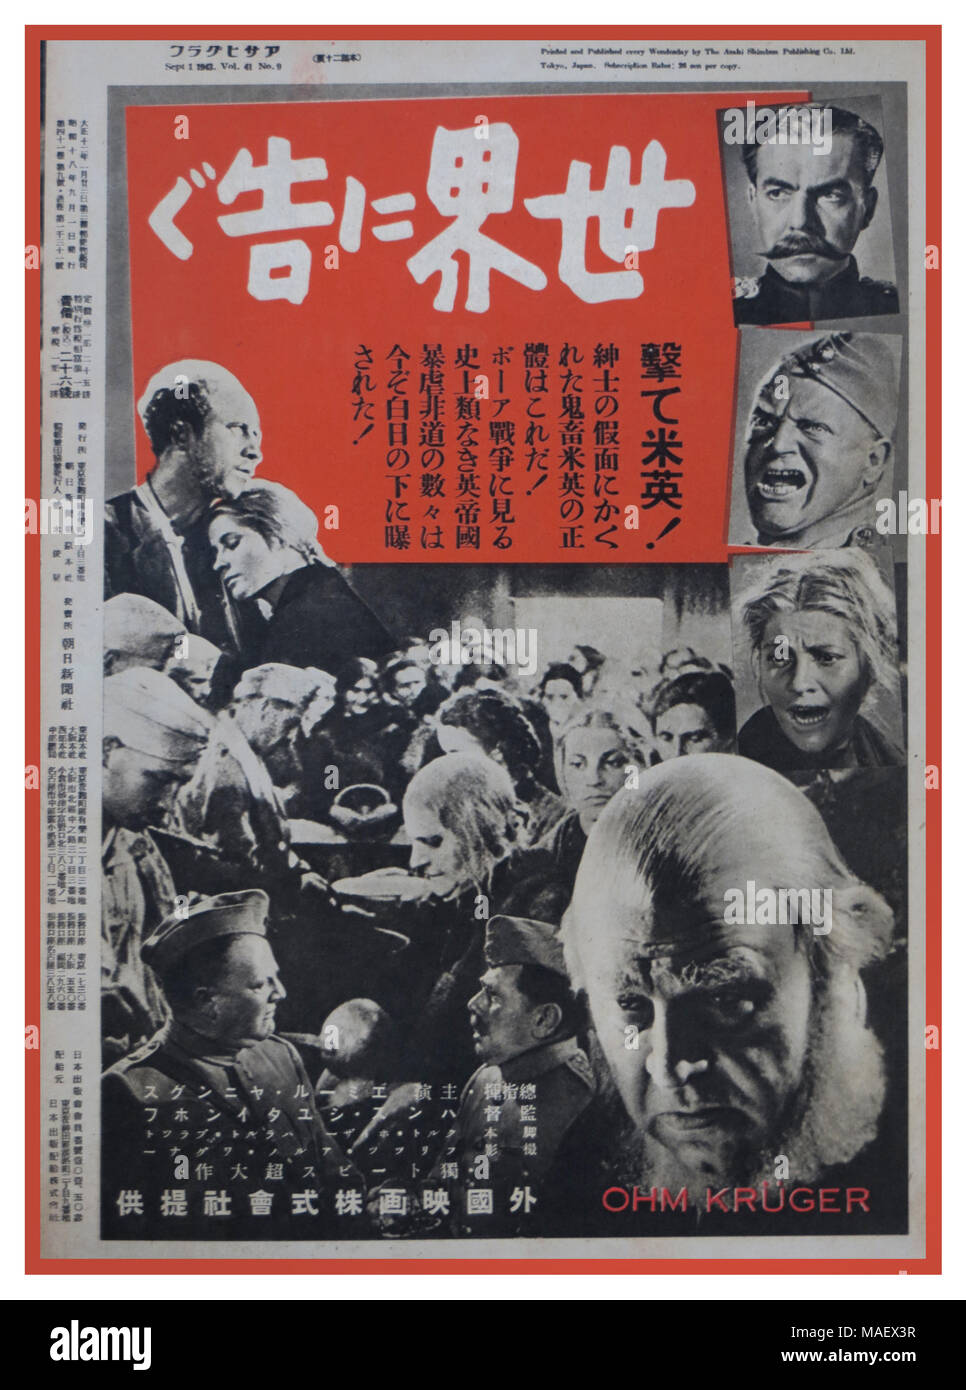 Ohm Krüger is a 1941 German propaganda WW2  biographical film directed by Hans Steinhoff and starring Emil Jannings, Lucie Höflich and Werner Hinz. It was one of a series of propaganda films produced in Nazi Germany attacking the British which was also produced in Japan in 1943. - Stock Image